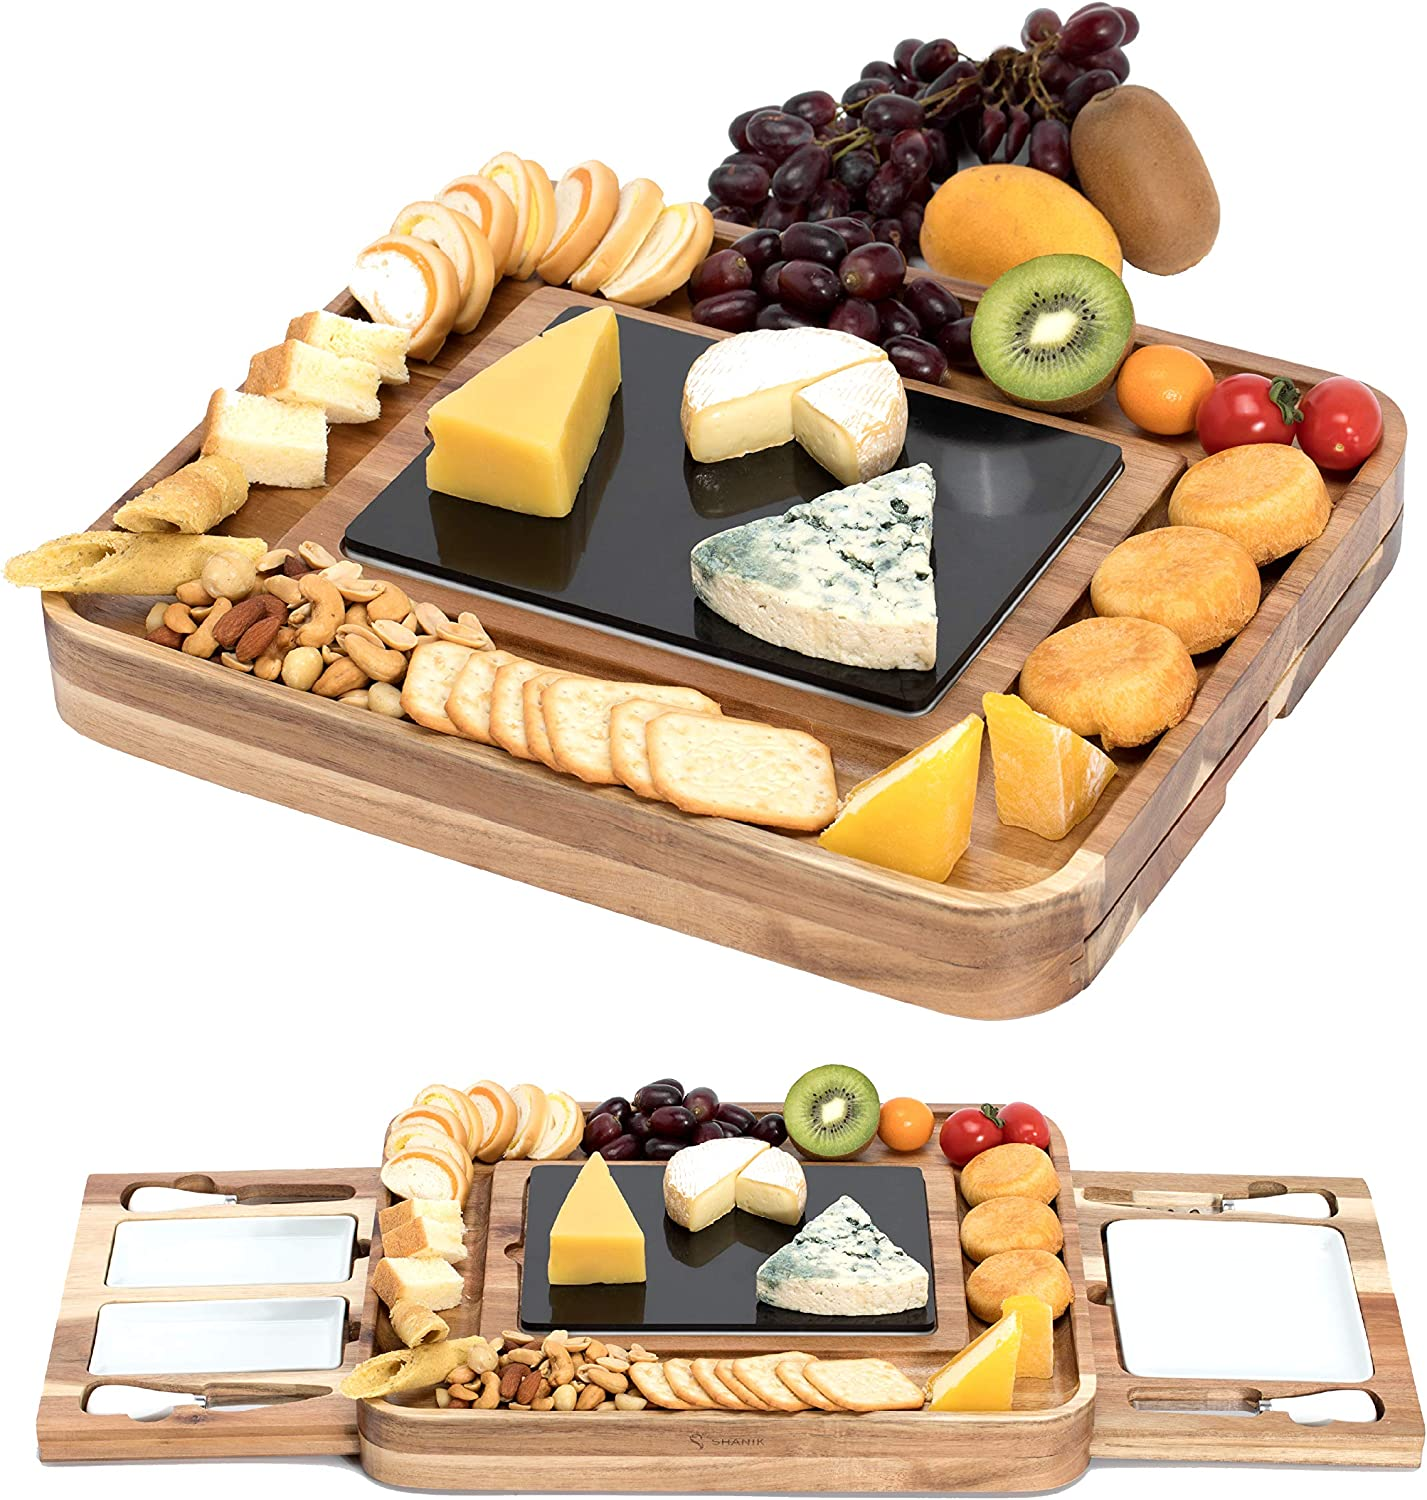 Shanik Acacia Cheese Board Set, Square Shaped Charcuterie Set, Cheese Platter with 2 Slide-Out Drawers, Stainless Steel Cutlery Set, Double Sided Marble Blade, Excellent Gift for any Occasion (Acacia)